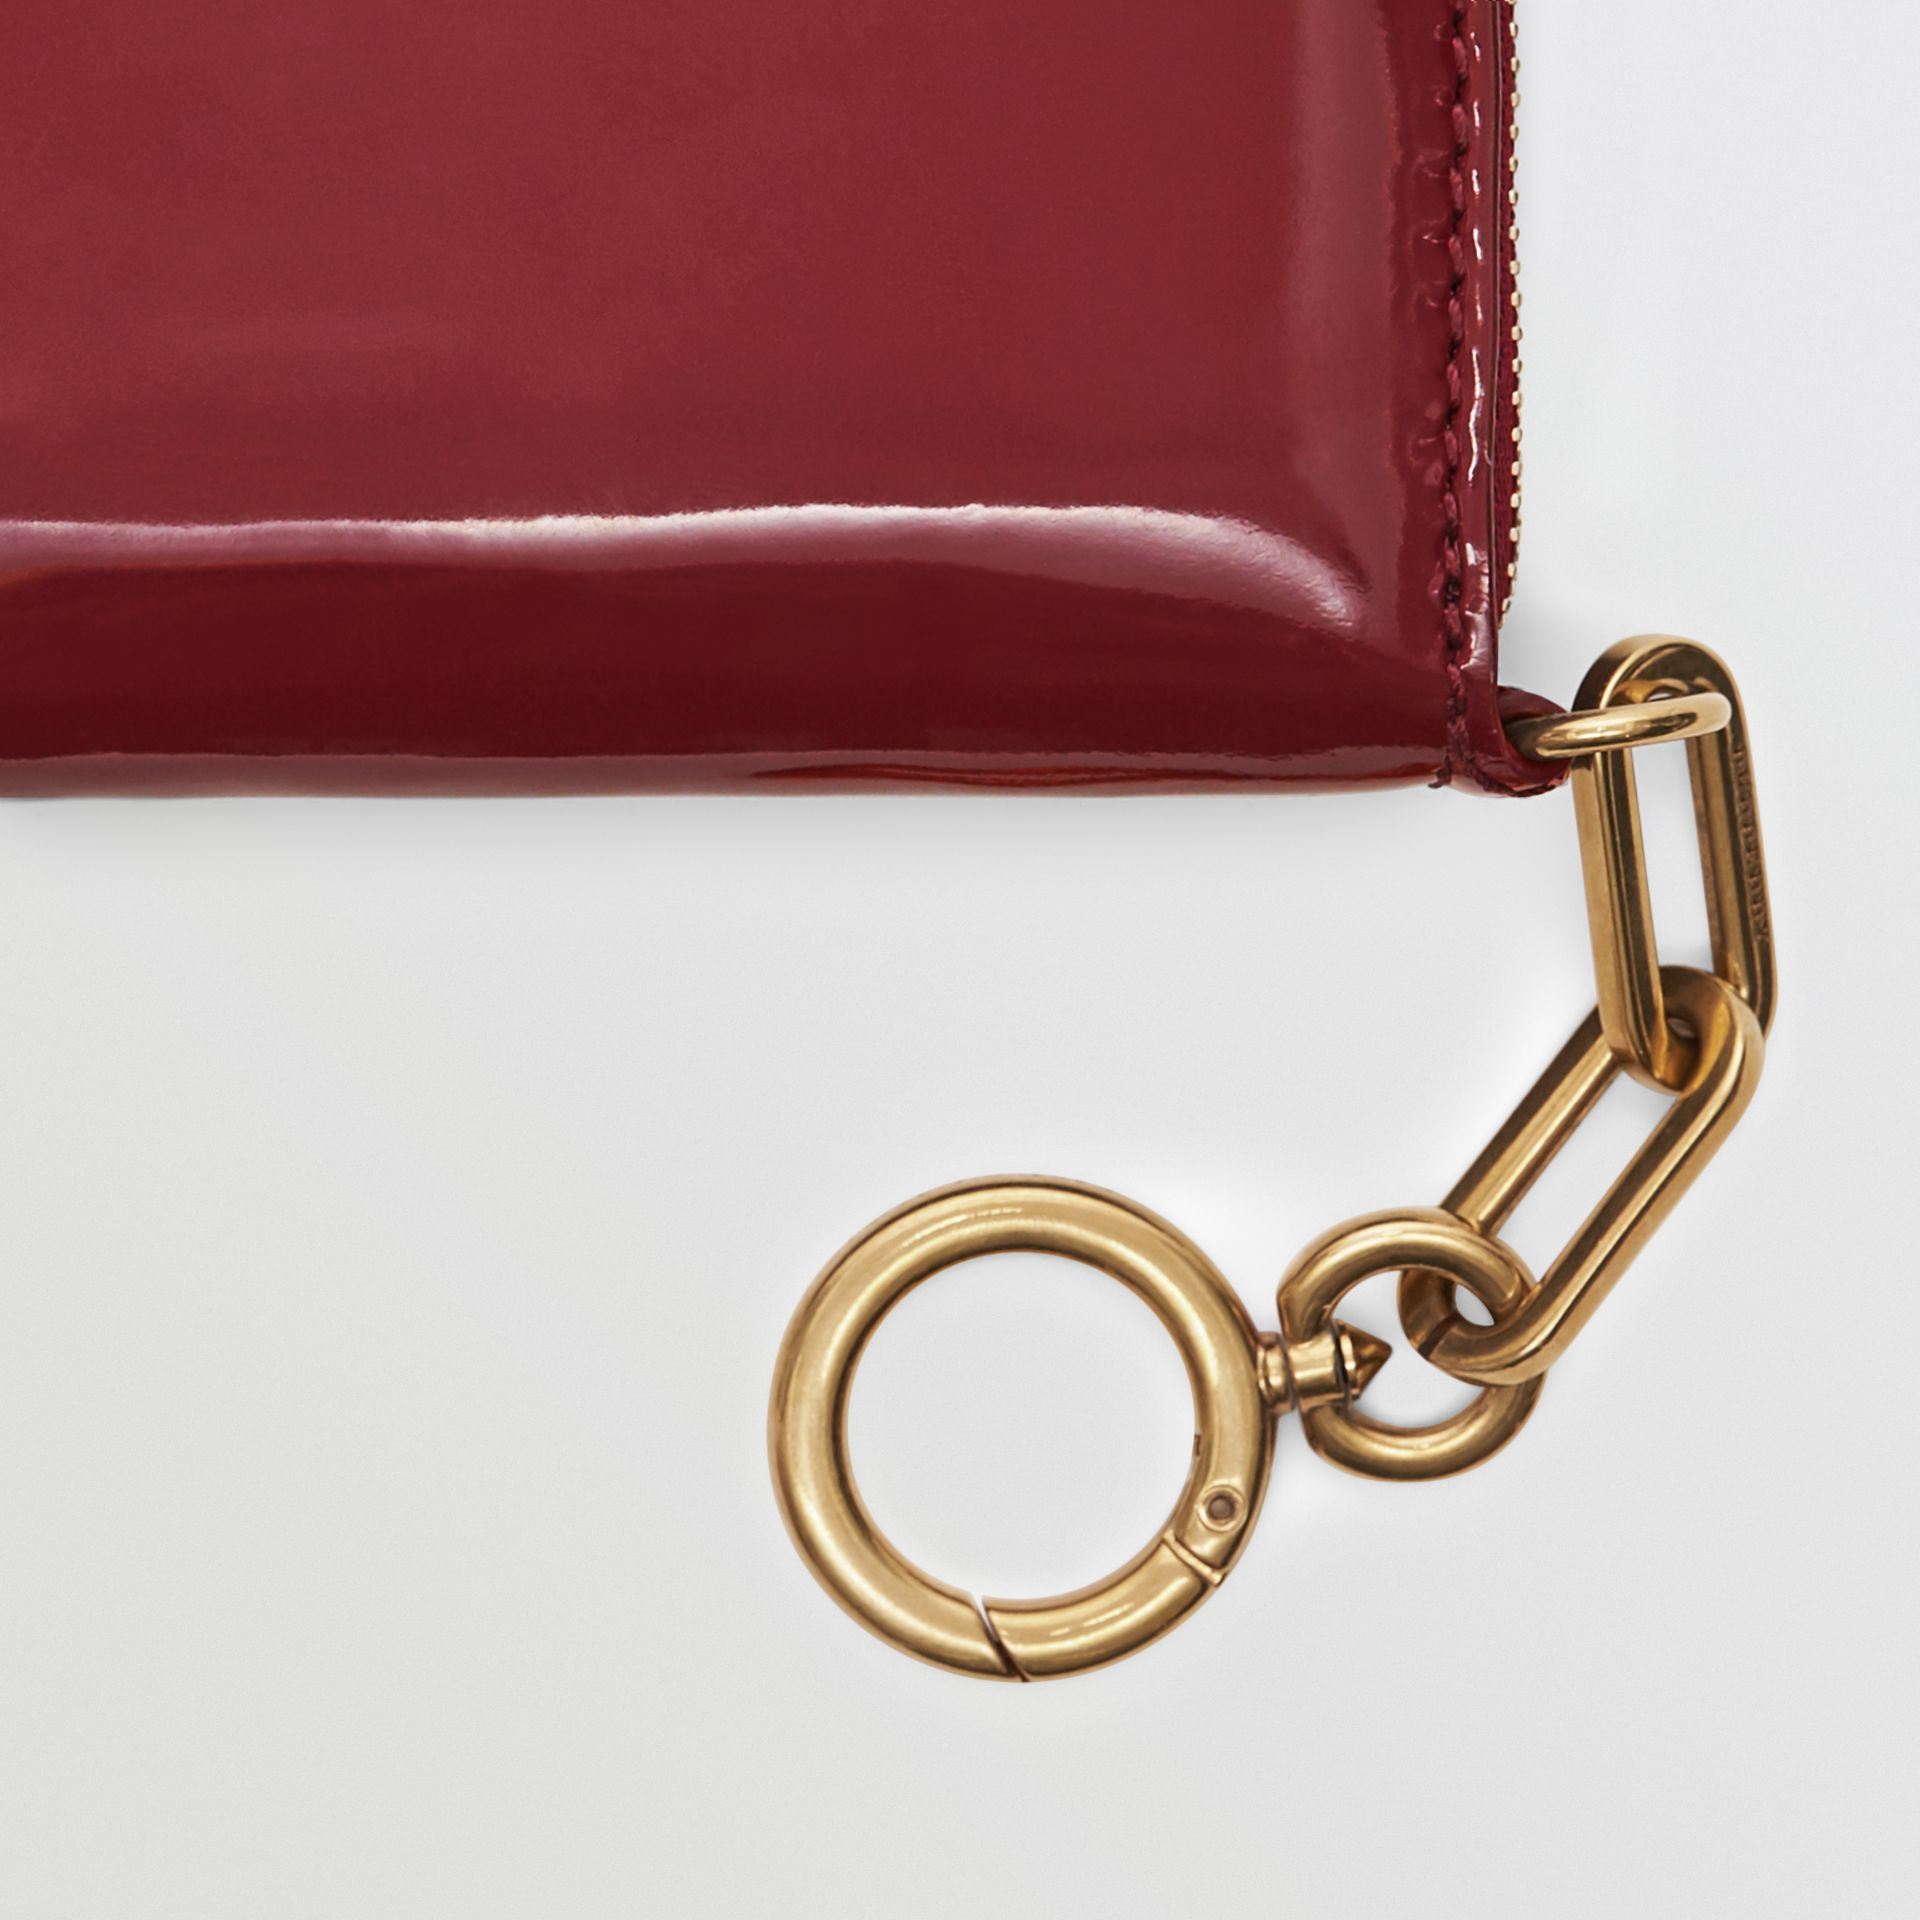 Link Detail Patent Leather Ziparound Wallet in Crimson - Women | Burberry United Kingdom - gallery image 1